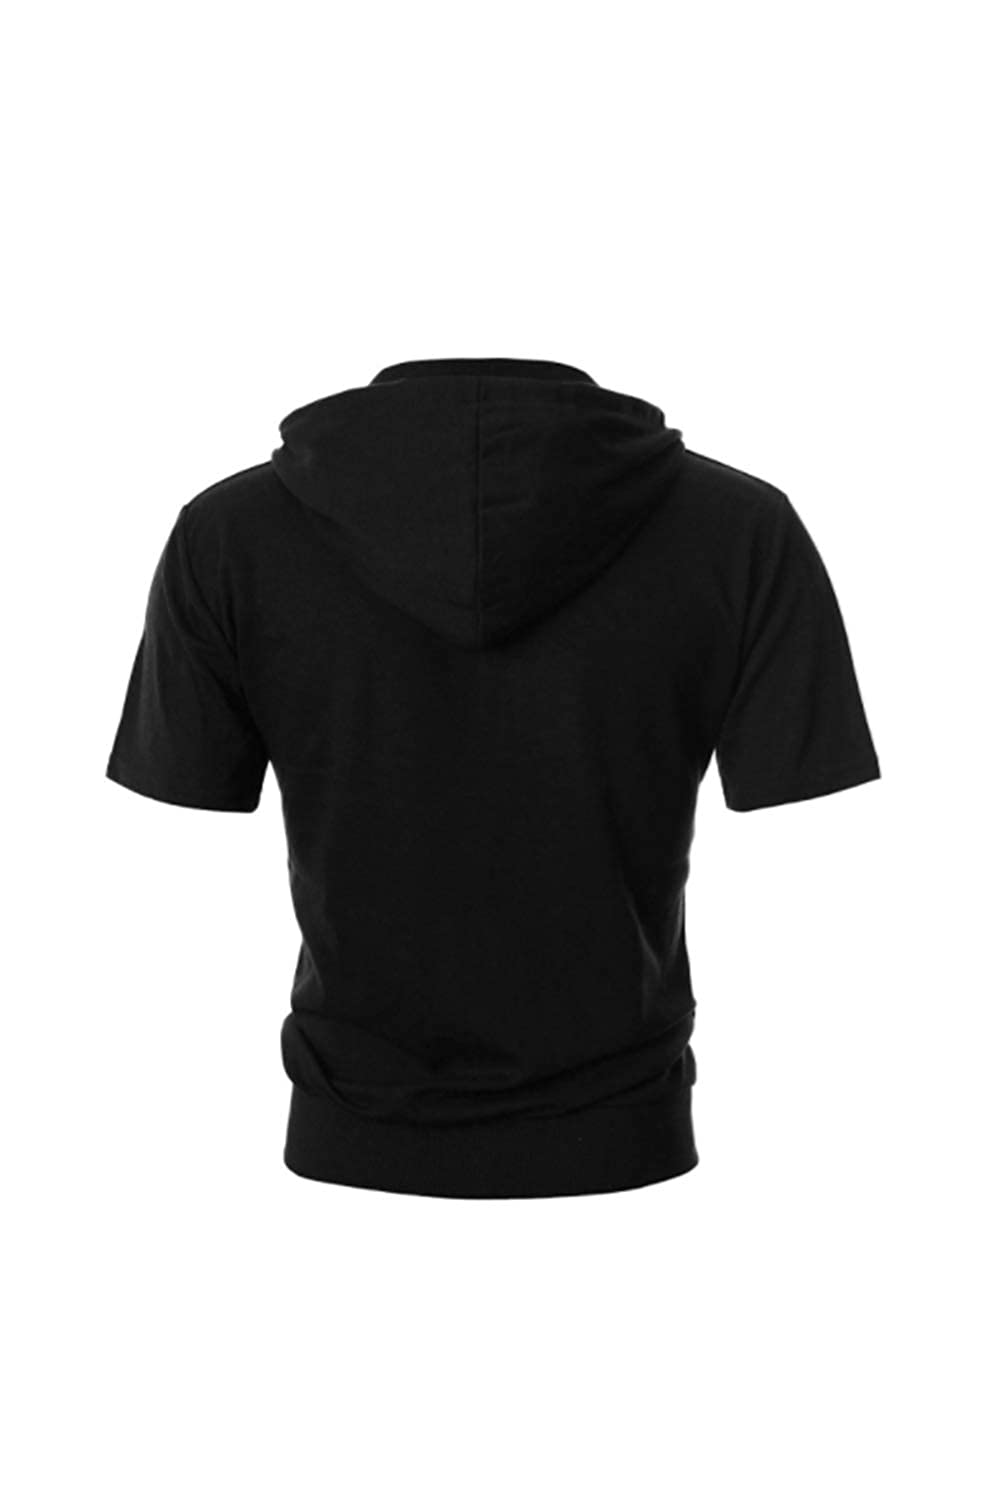 Jomuhoy Mens Hoodie Sweatshirt Short Sleeve Full-Zip Pocket Pure Tops